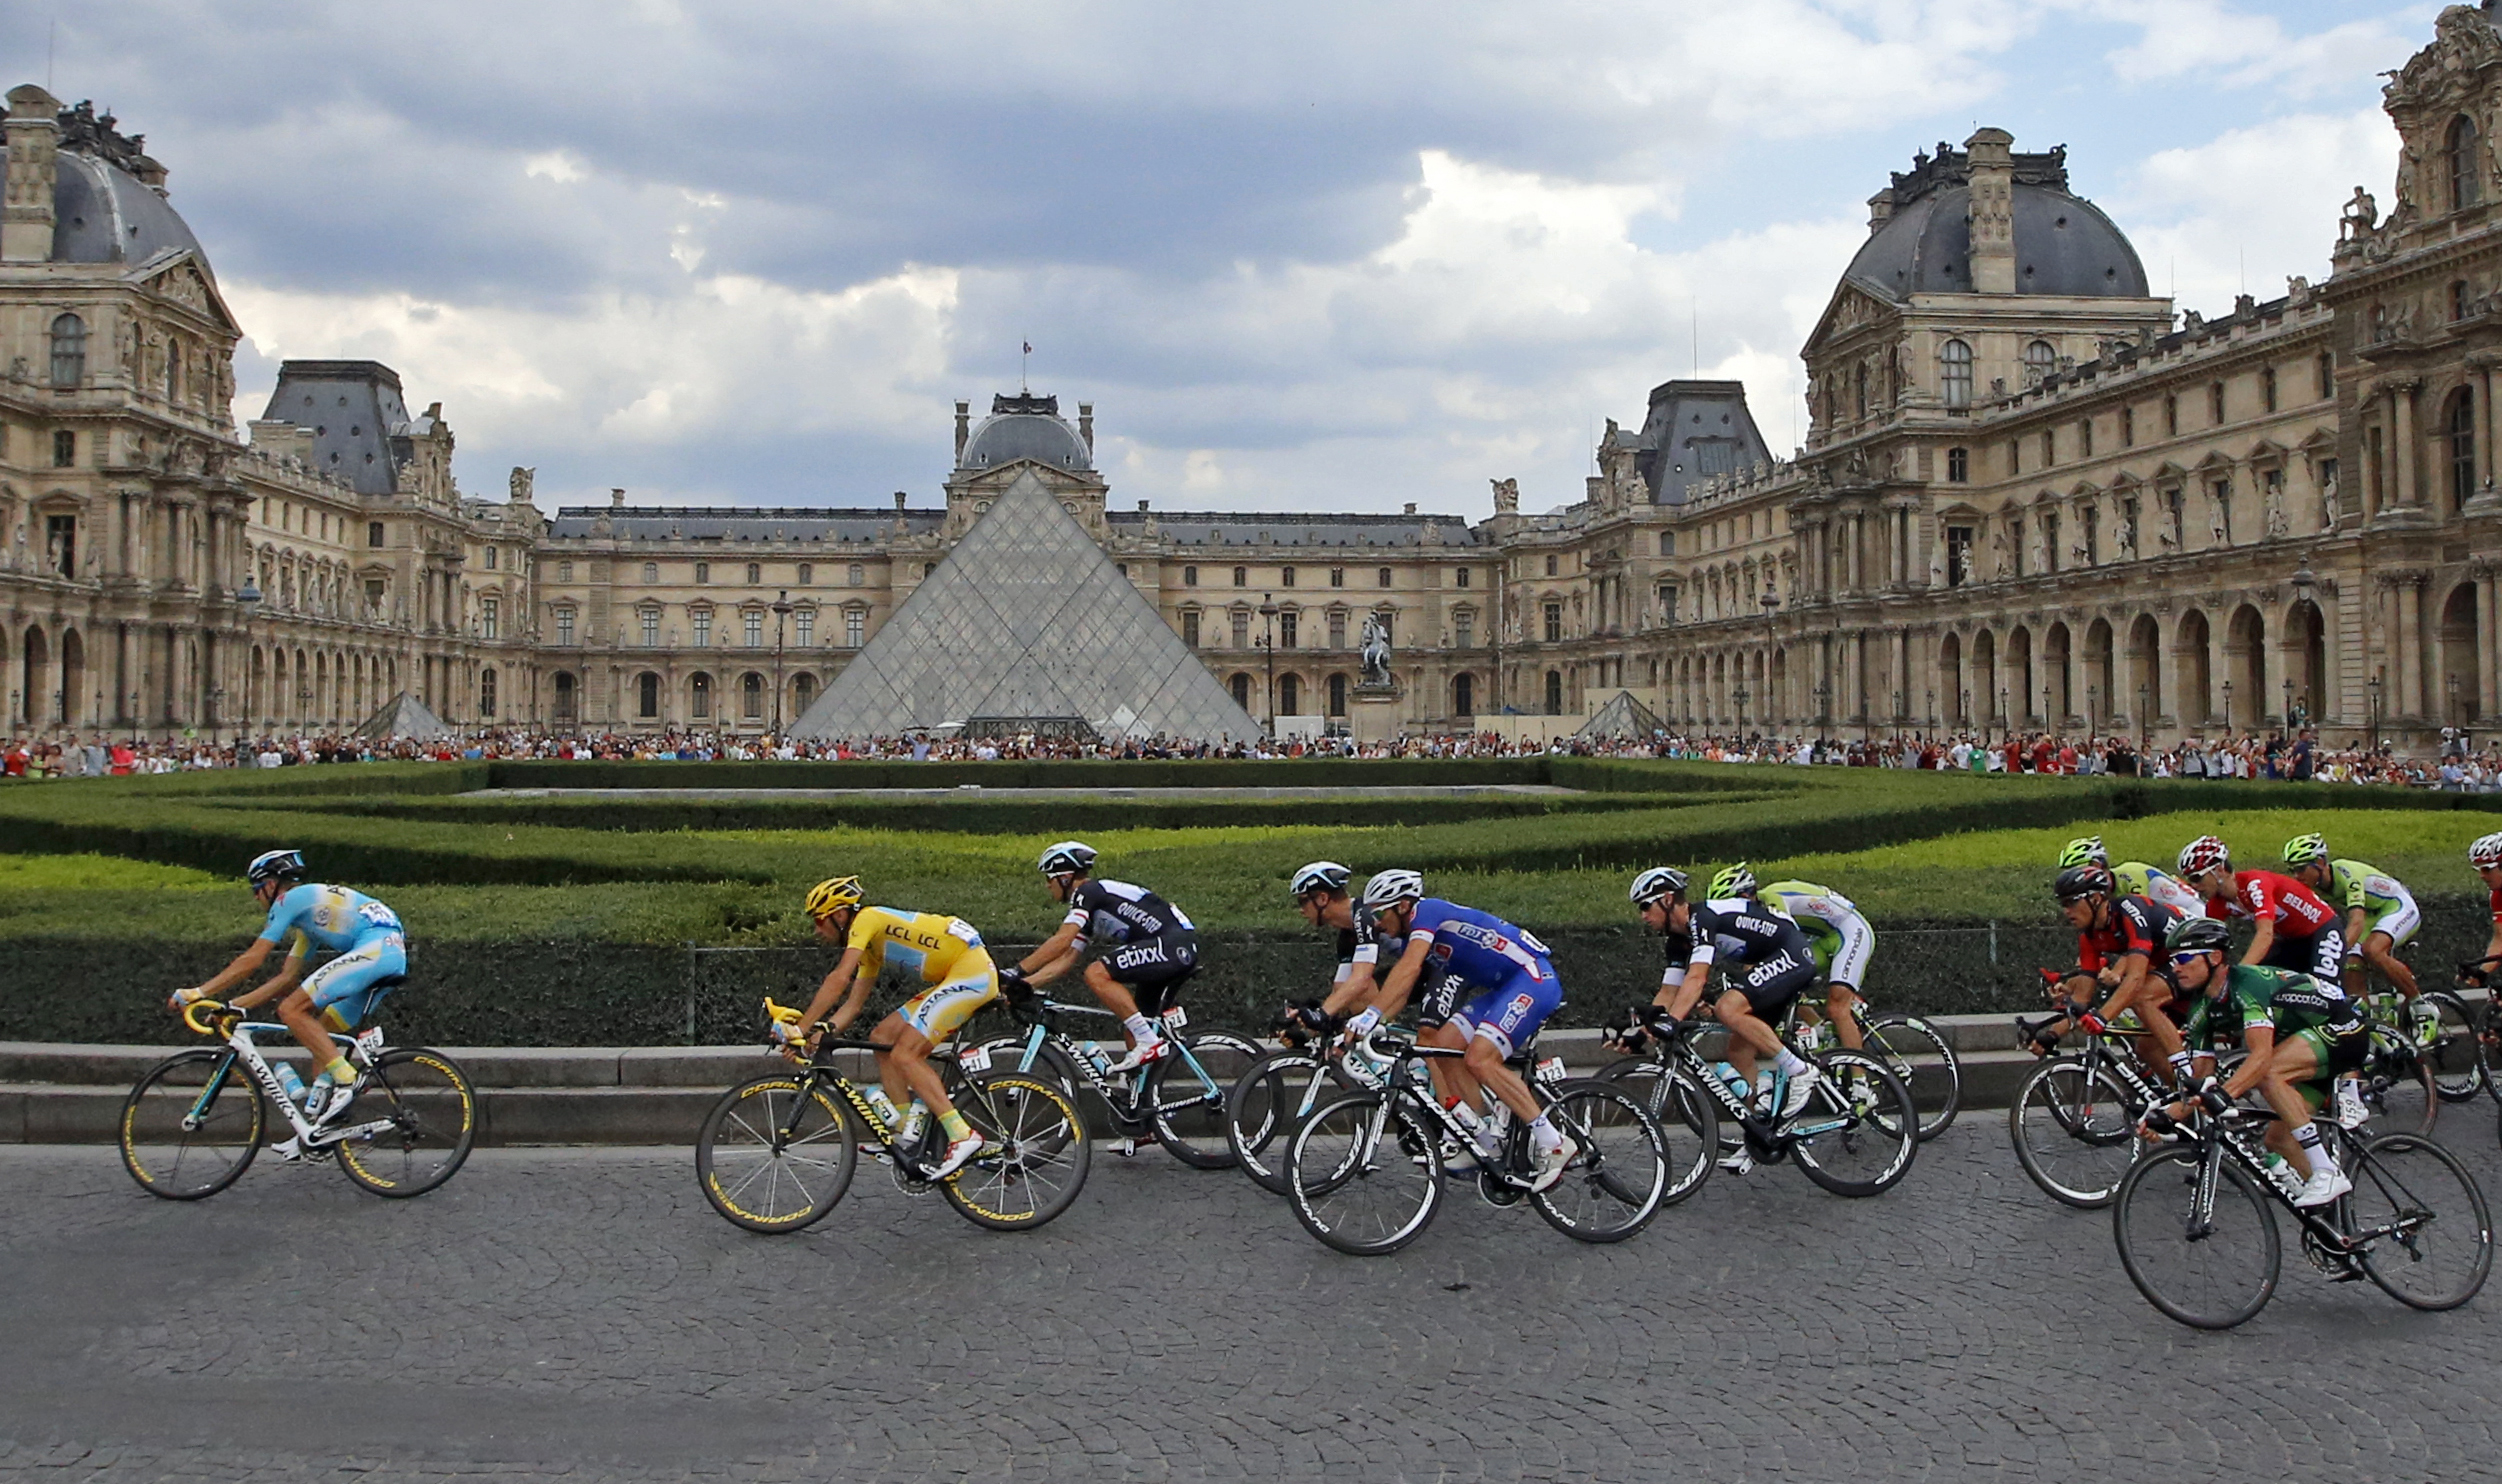 The pack, with Vincenzo Nibali of Italy, wearing the overall leader's yellow jersey, left, rides through the courtyard of the Louvre museum.